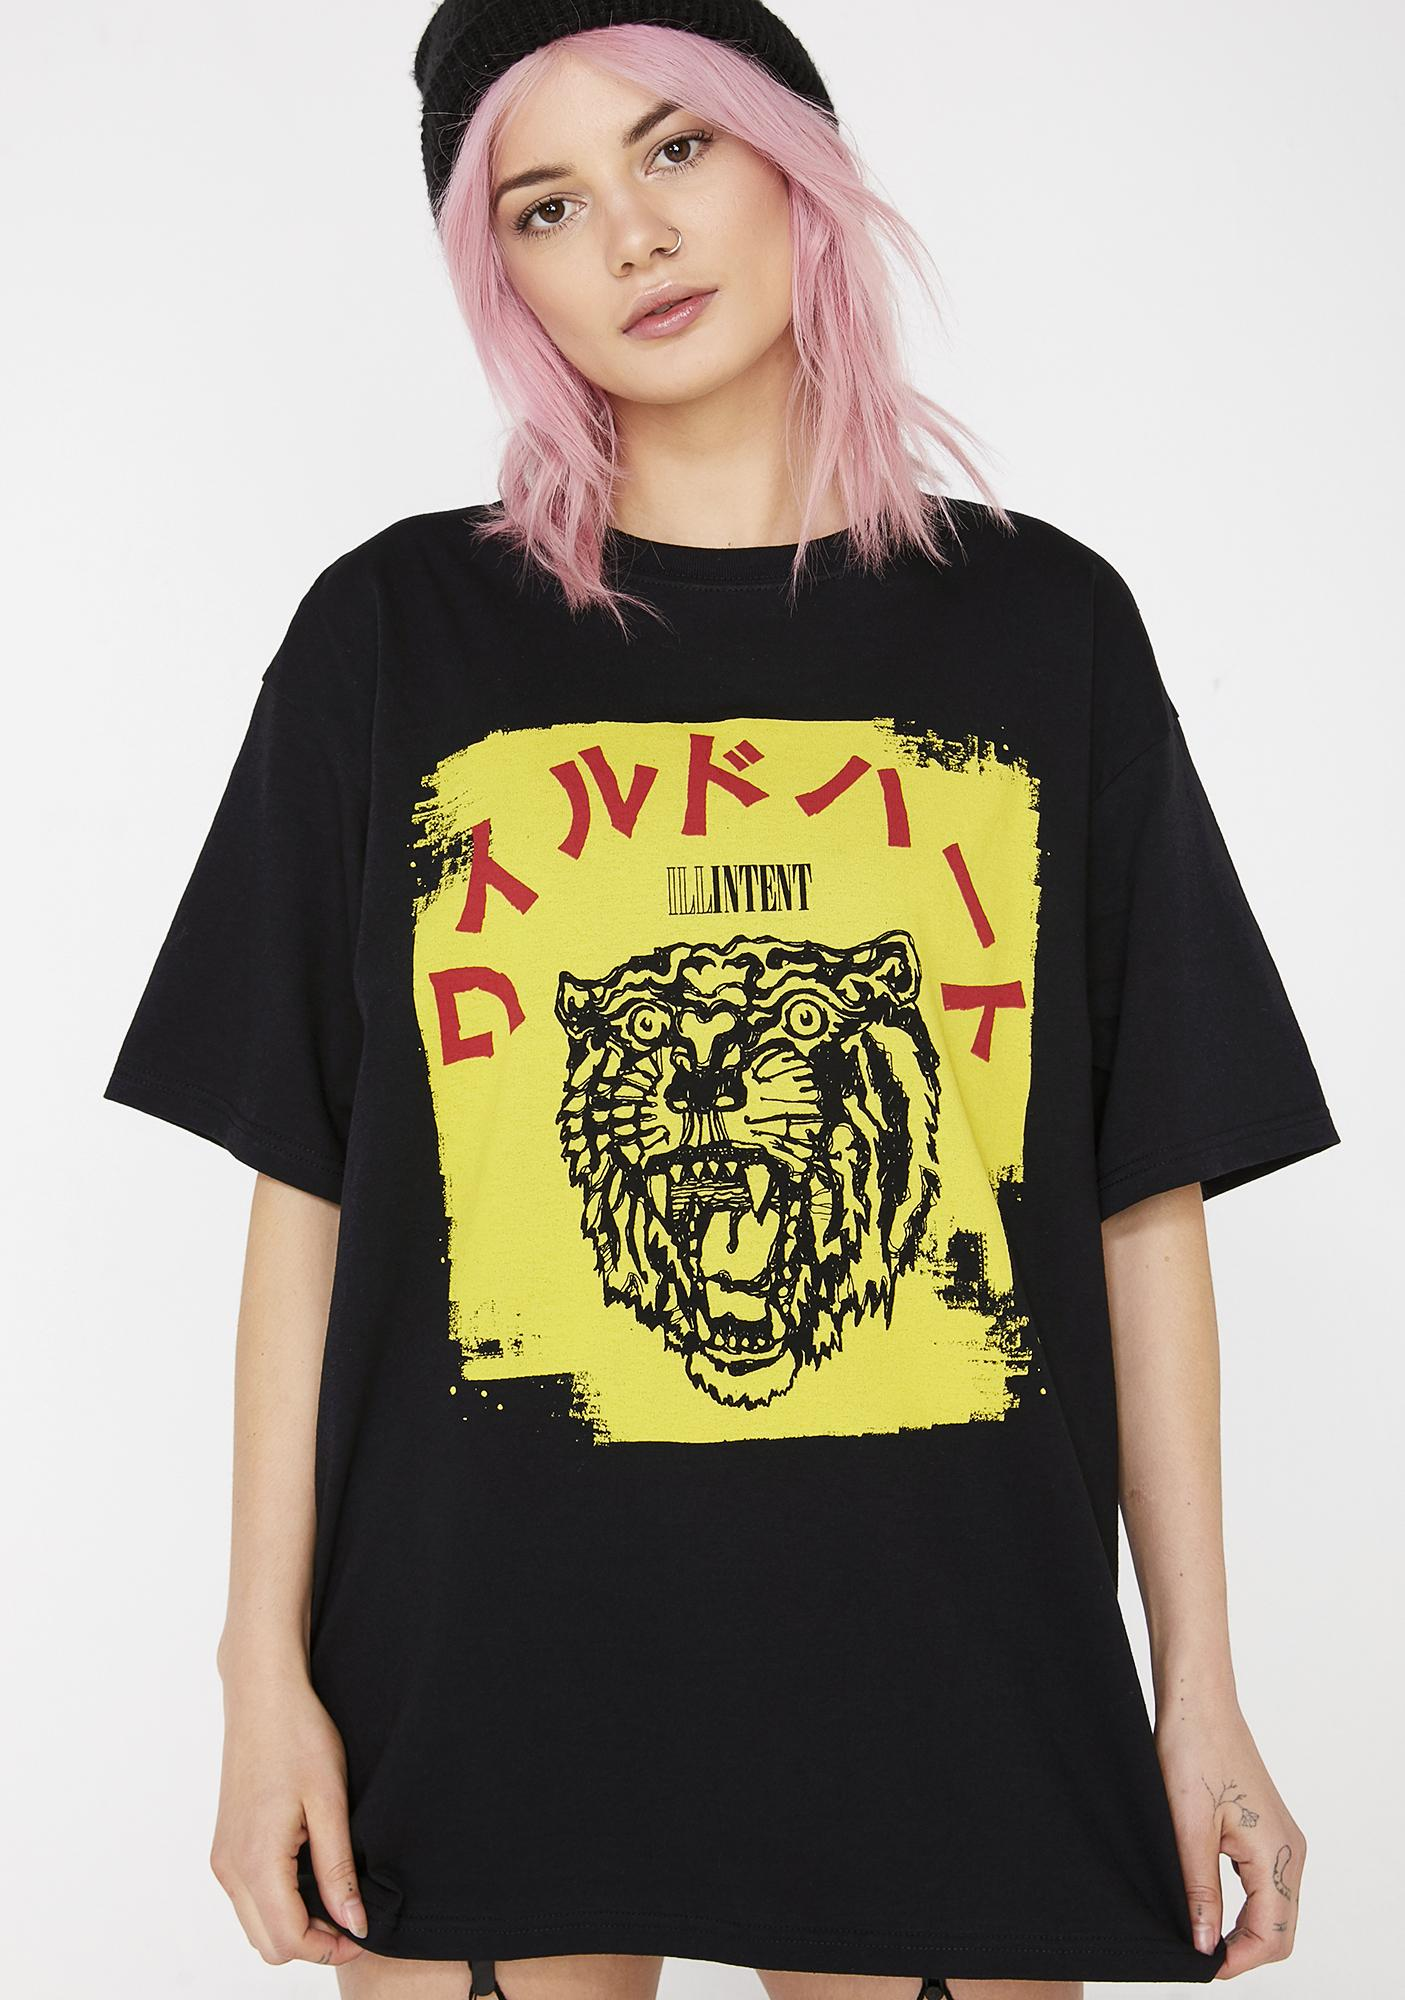 ILL INTENT The Tiger Tee